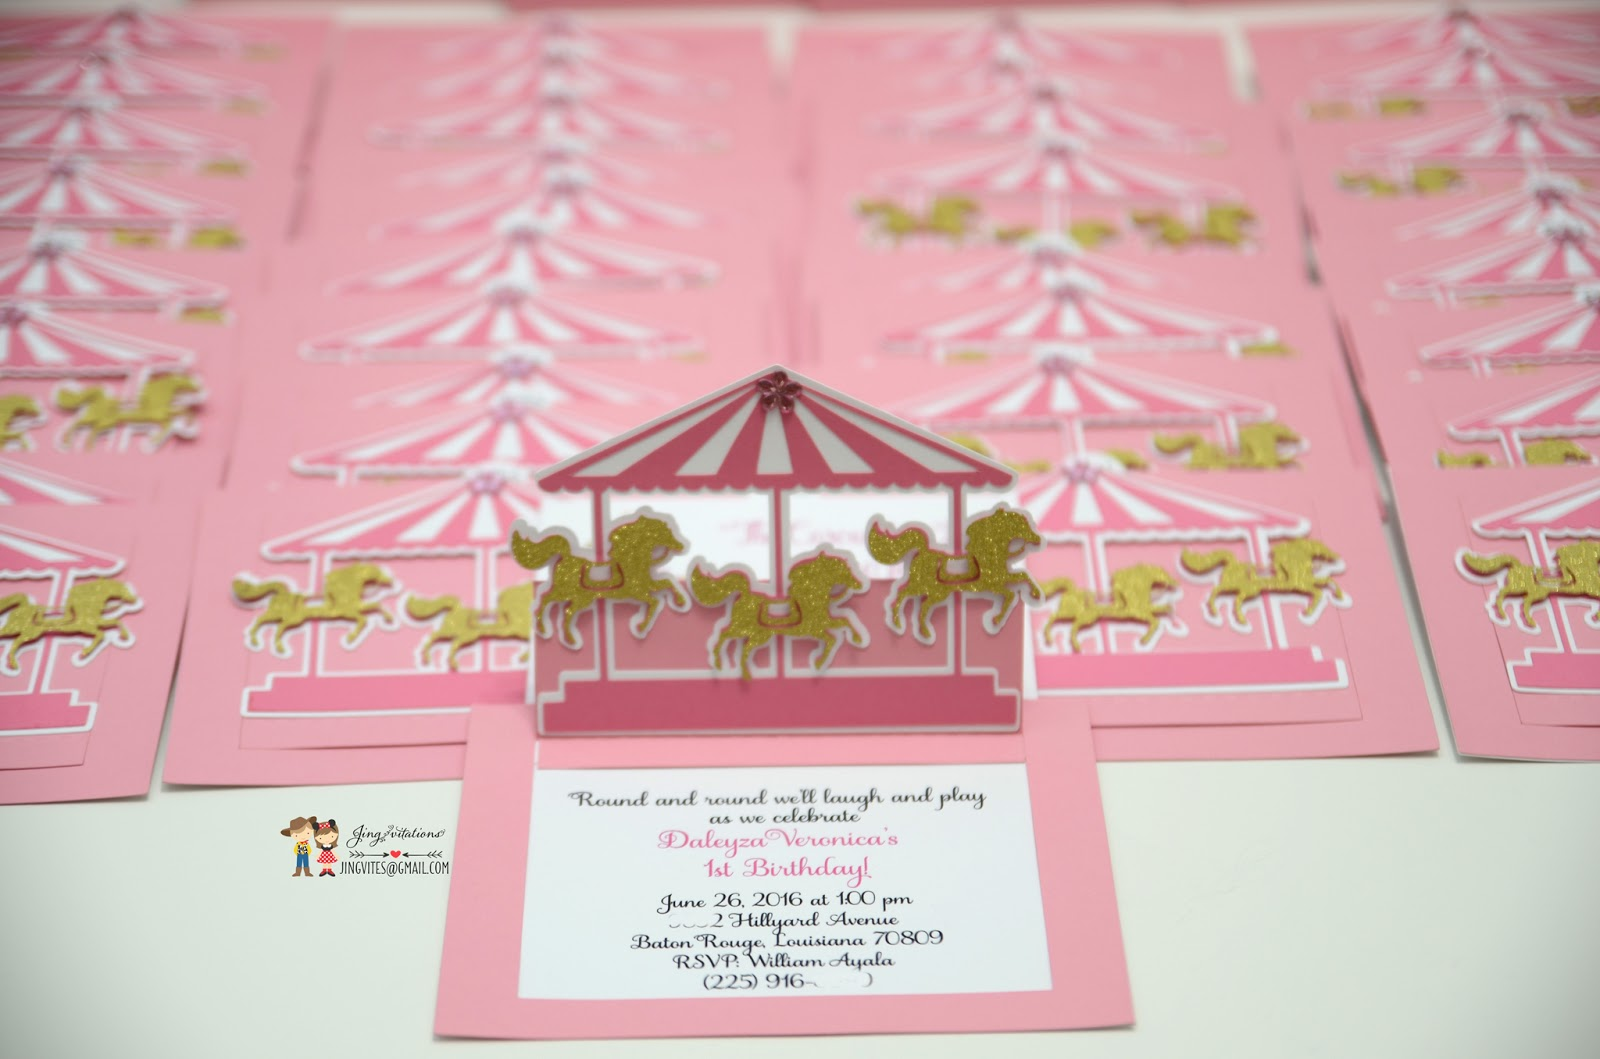 Birthday and Baby Shower Invitations: carousel invitations